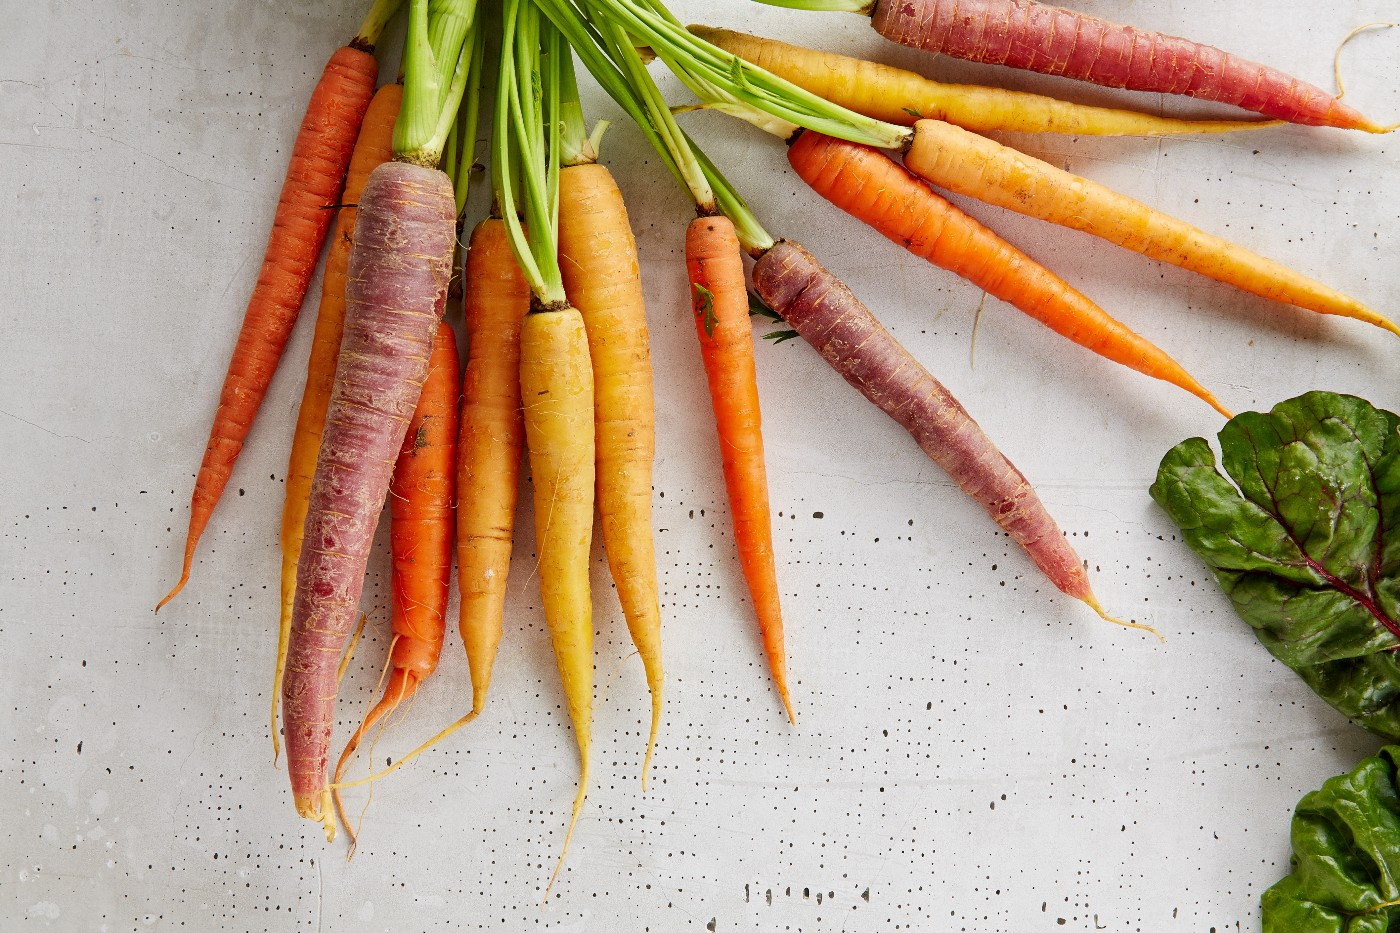 an array of carrots of different colors spread in a fan shape